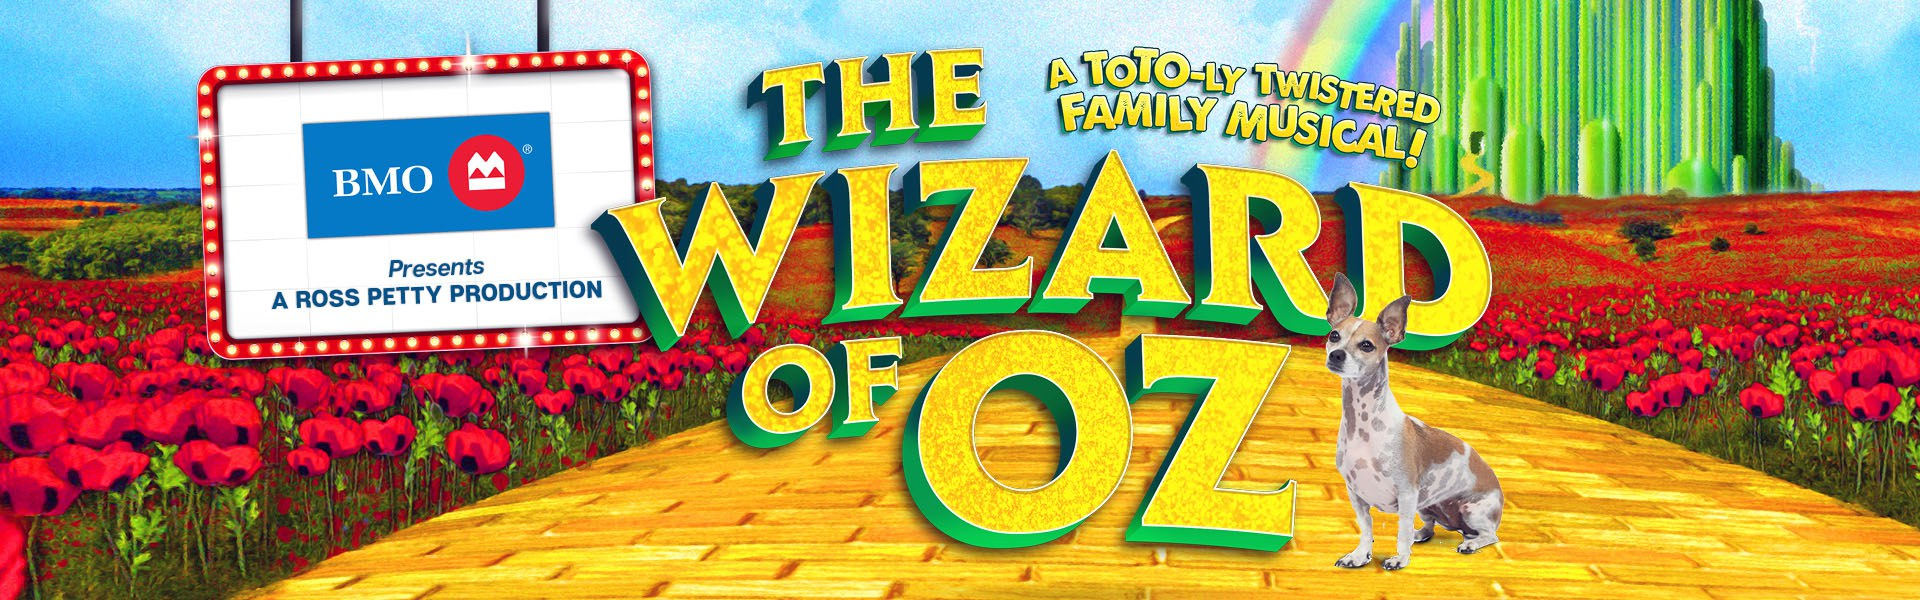 BMO présente une production de Ross Petty : The Wizard of Oz (Le Magicien d'OZ)